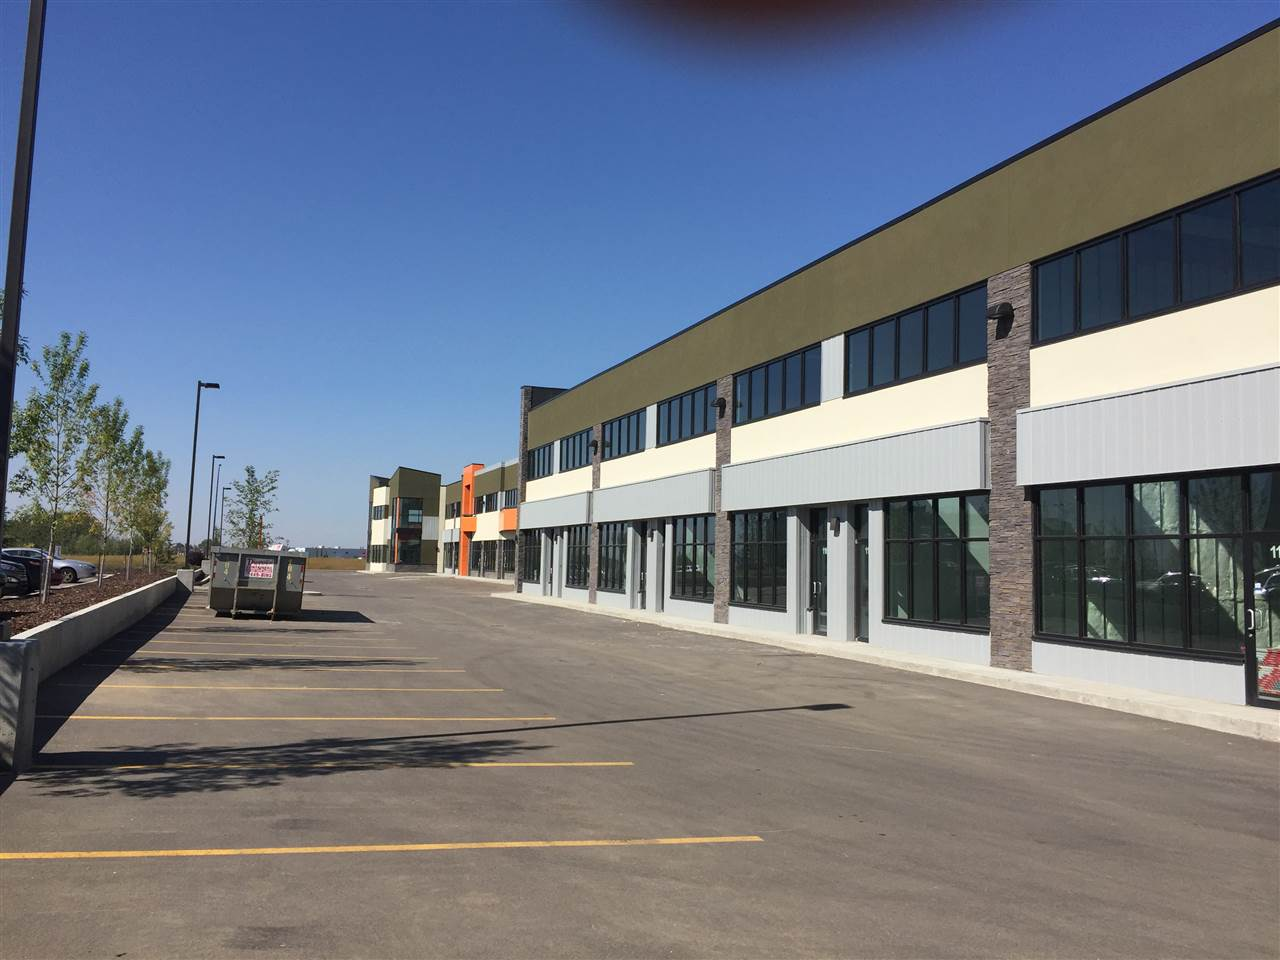 Photo 3: 113 1803 91 Street: Edmonton Retail for lease : MLS® # E4080921